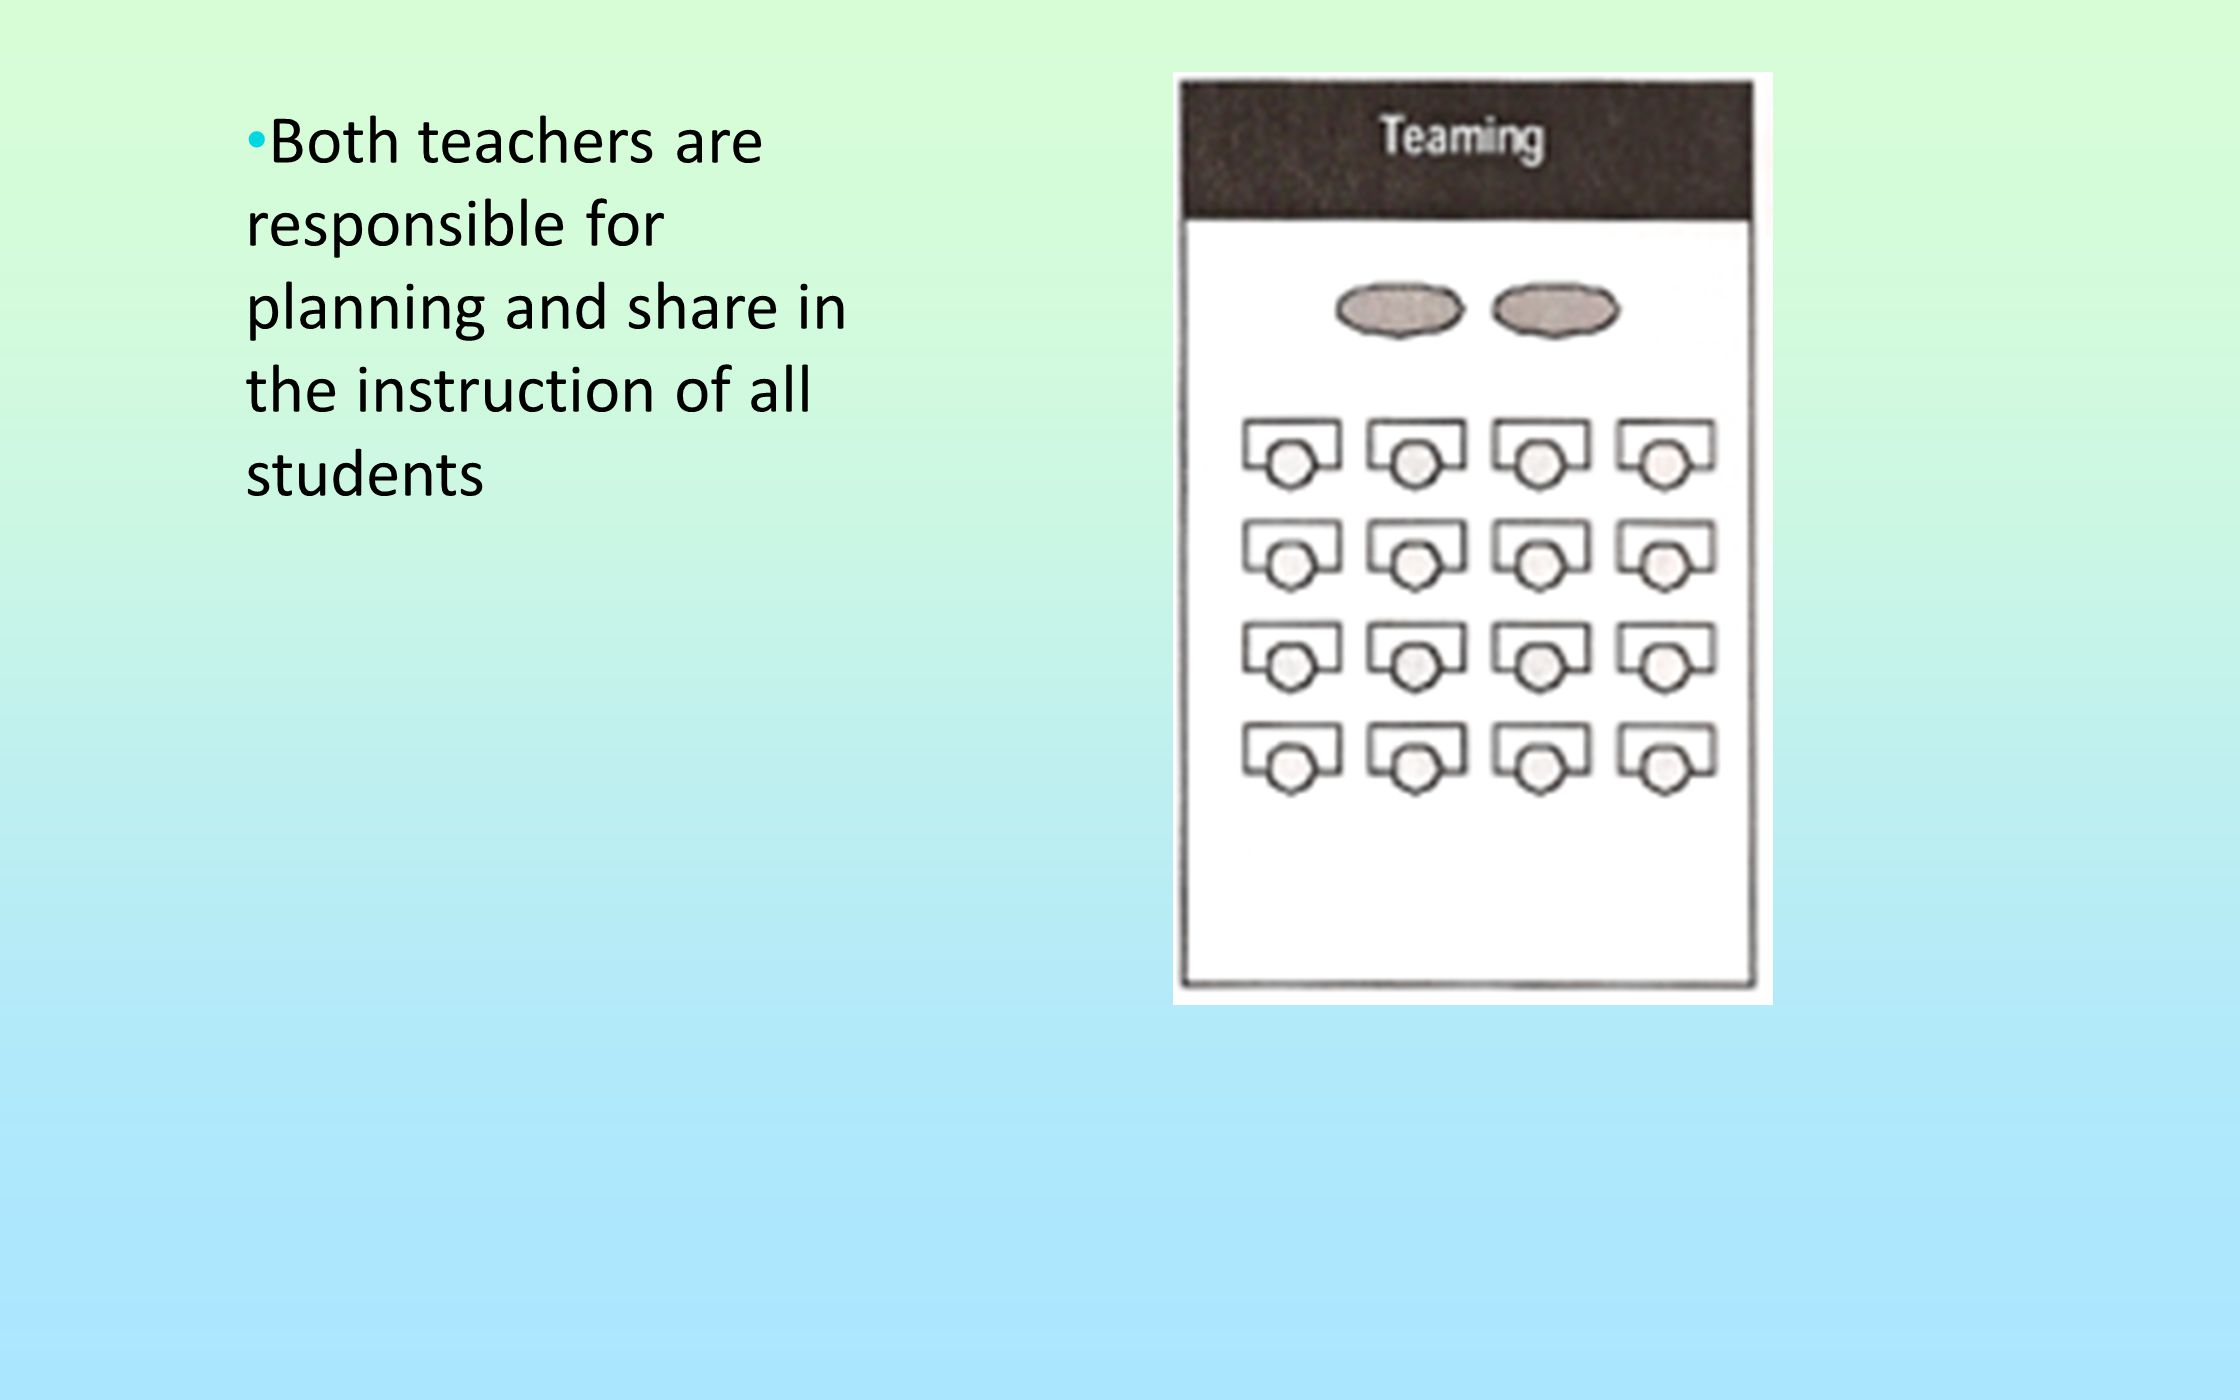 Both teachers are responsible for planning and share in the instruction of all students